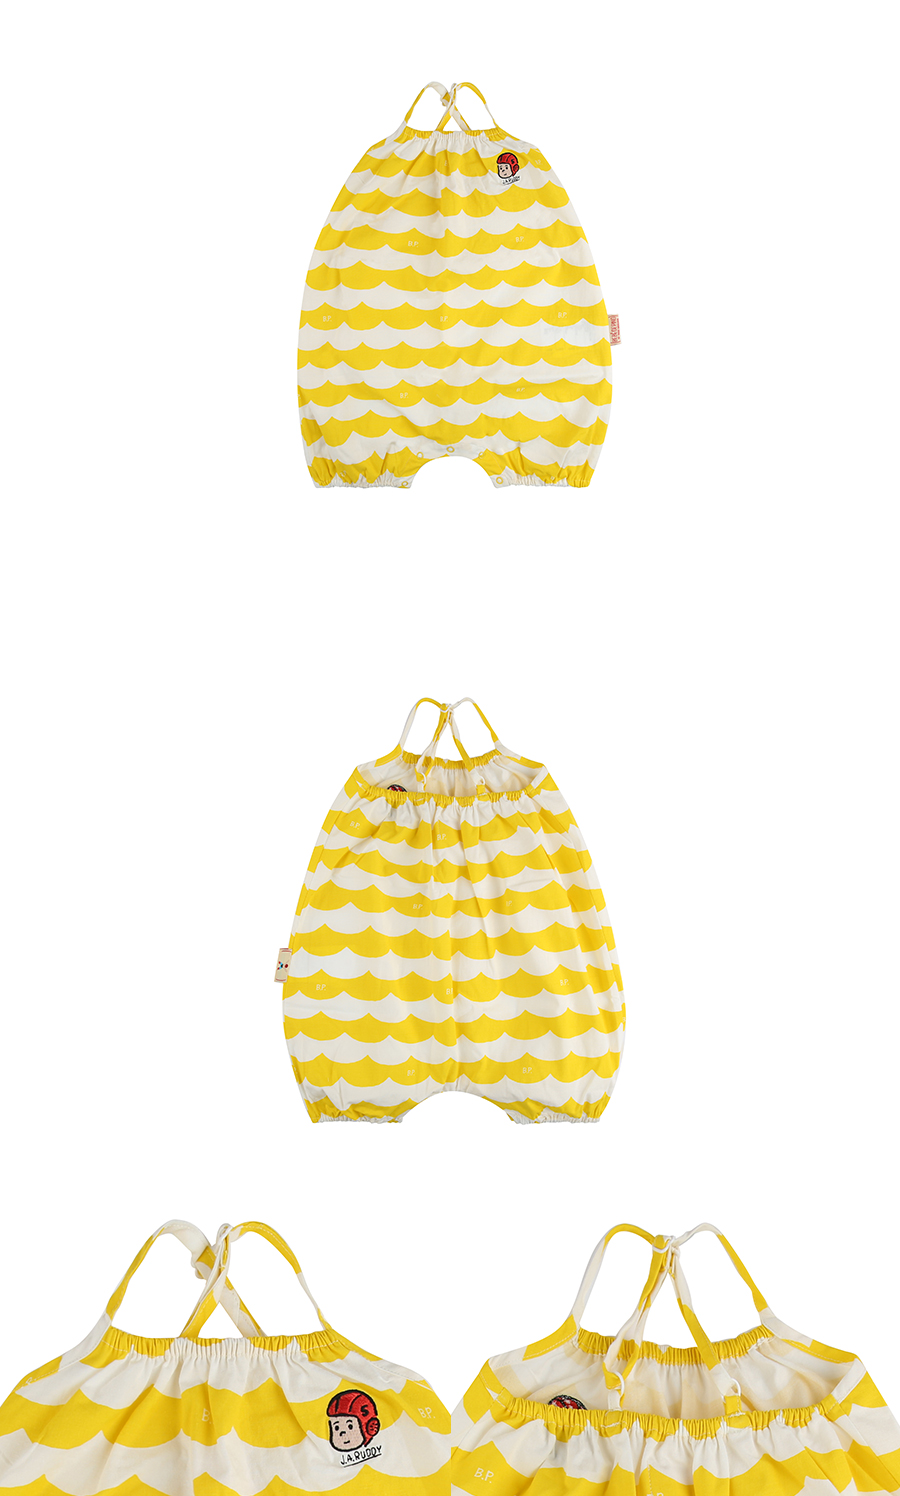 Multi yellow wave baby suit 상세 이미지